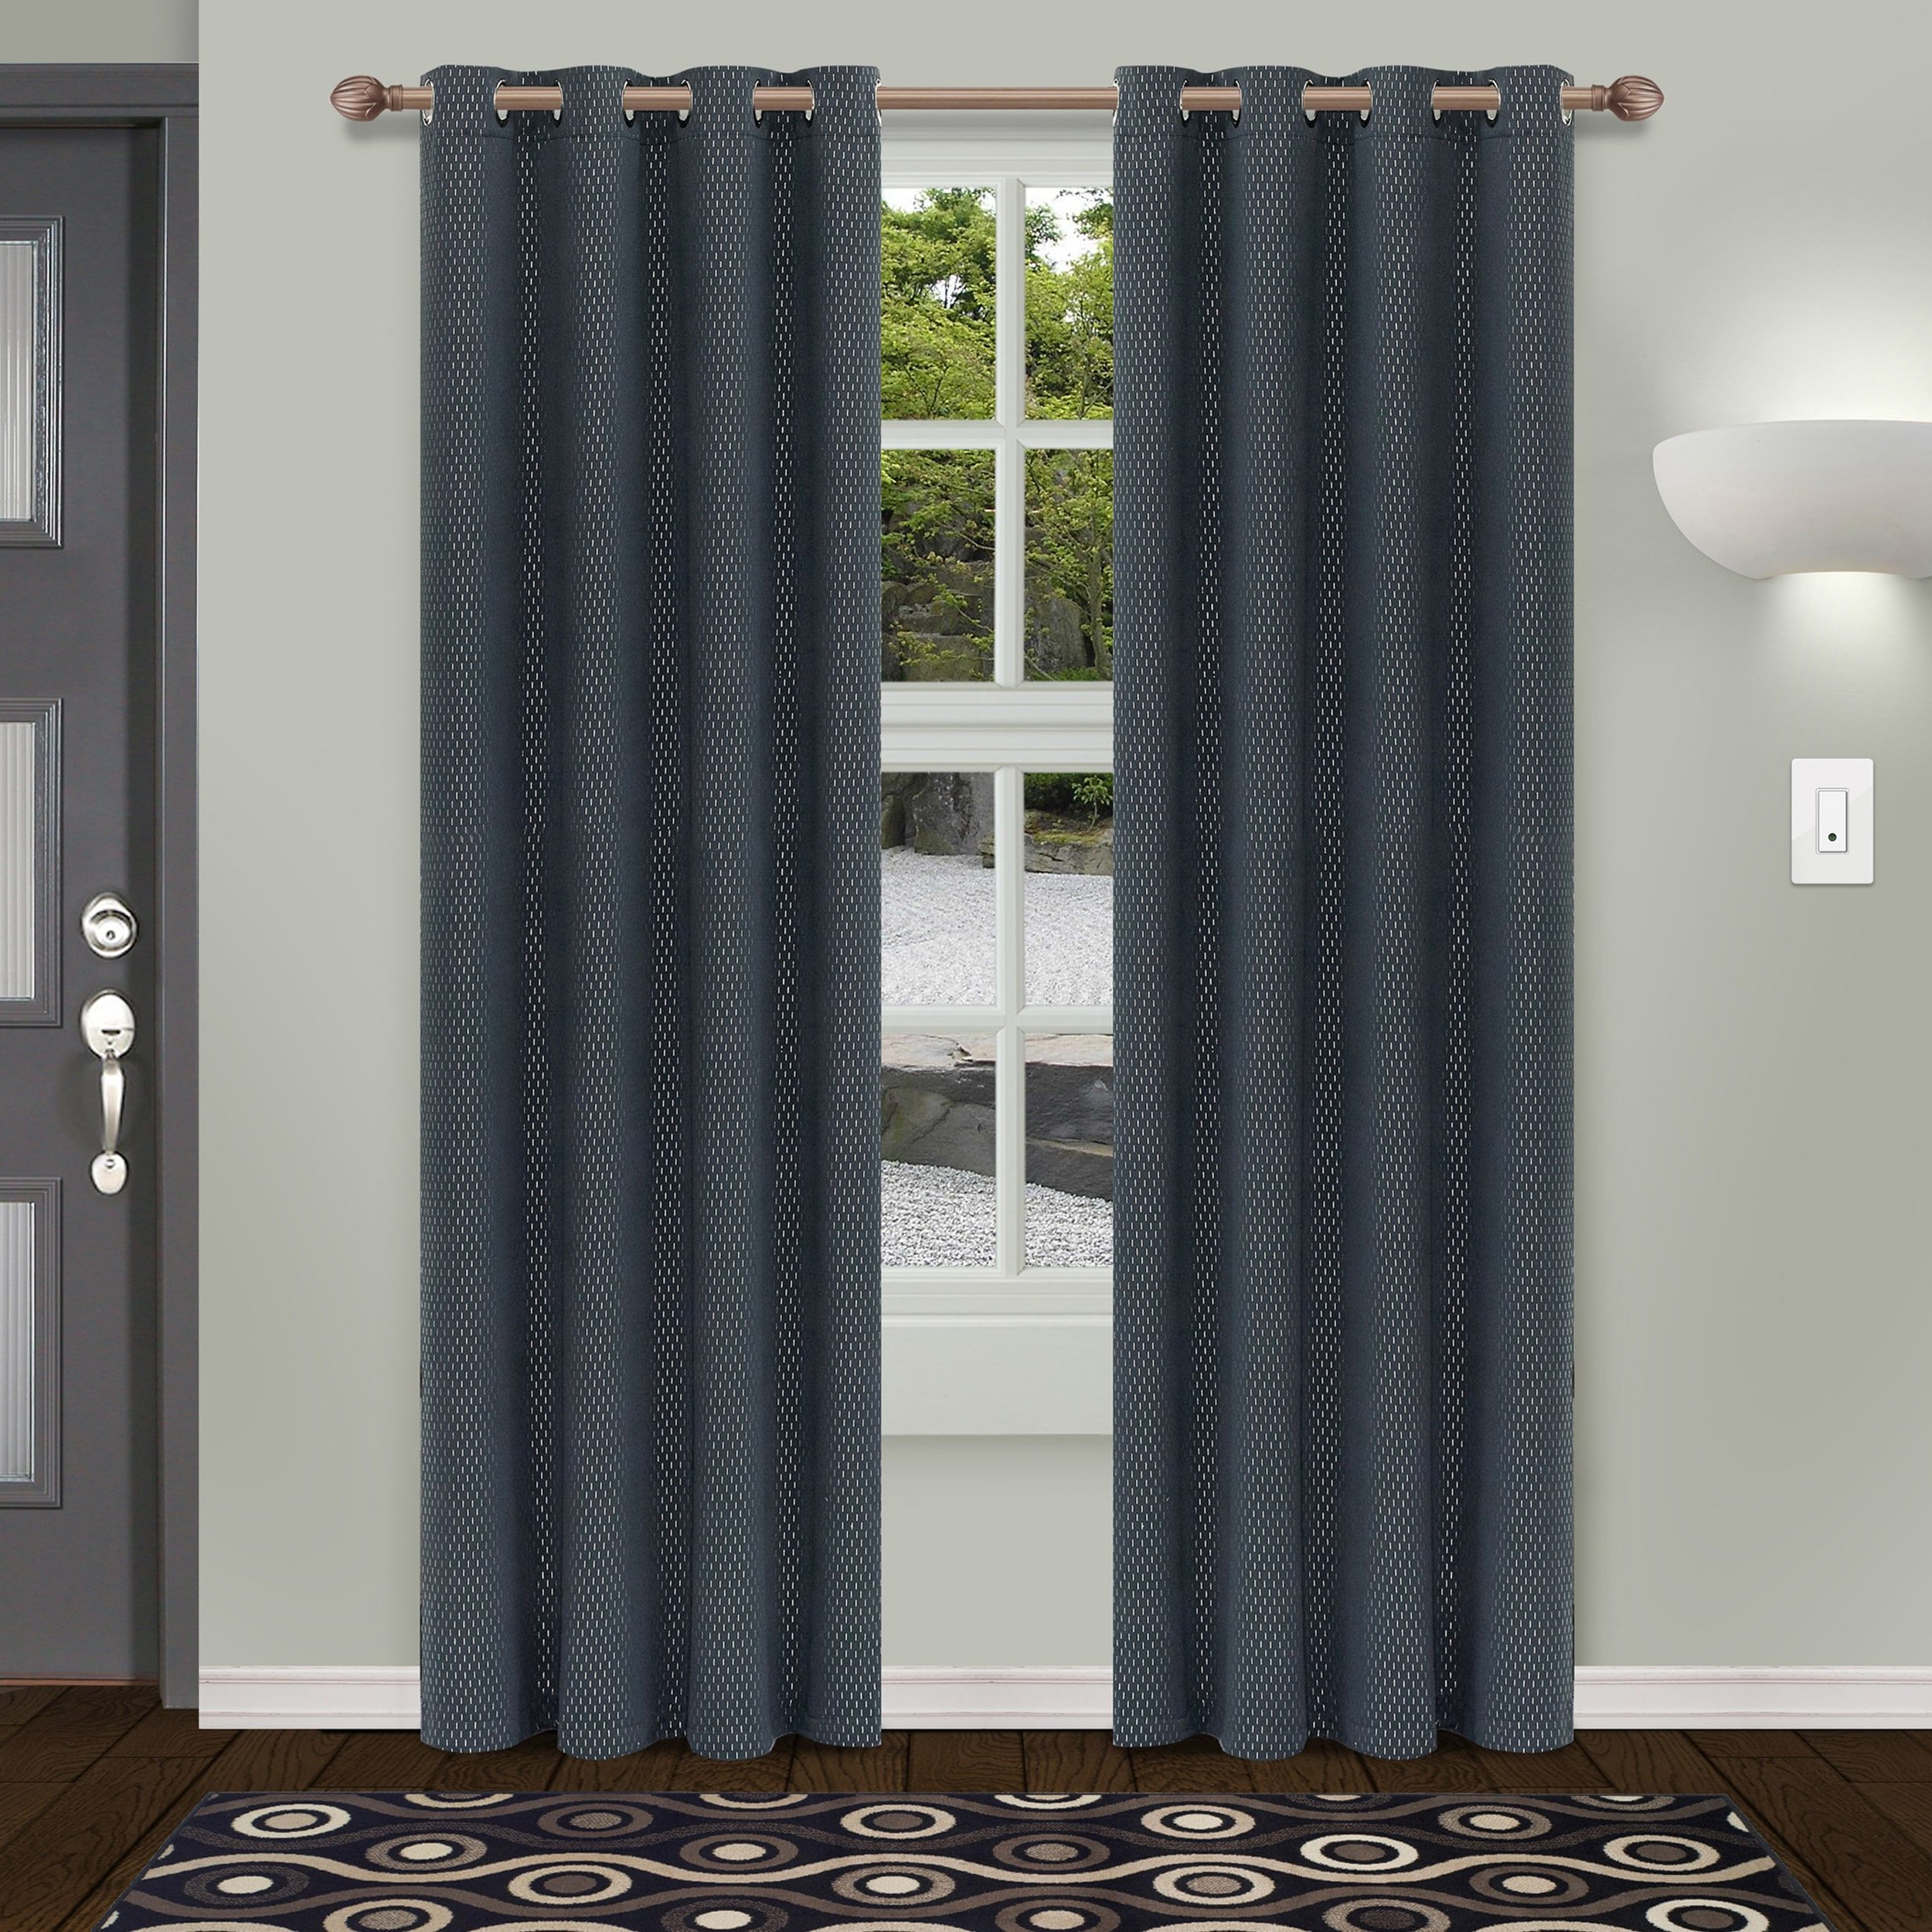 Superior Shimmer Insulated Thermal Blackout Grommet Curtain Pertaining To Recent Superior Solid Insulated Thermal Blackout Grommet Curtain Panel Pairs (View 14 of 20)